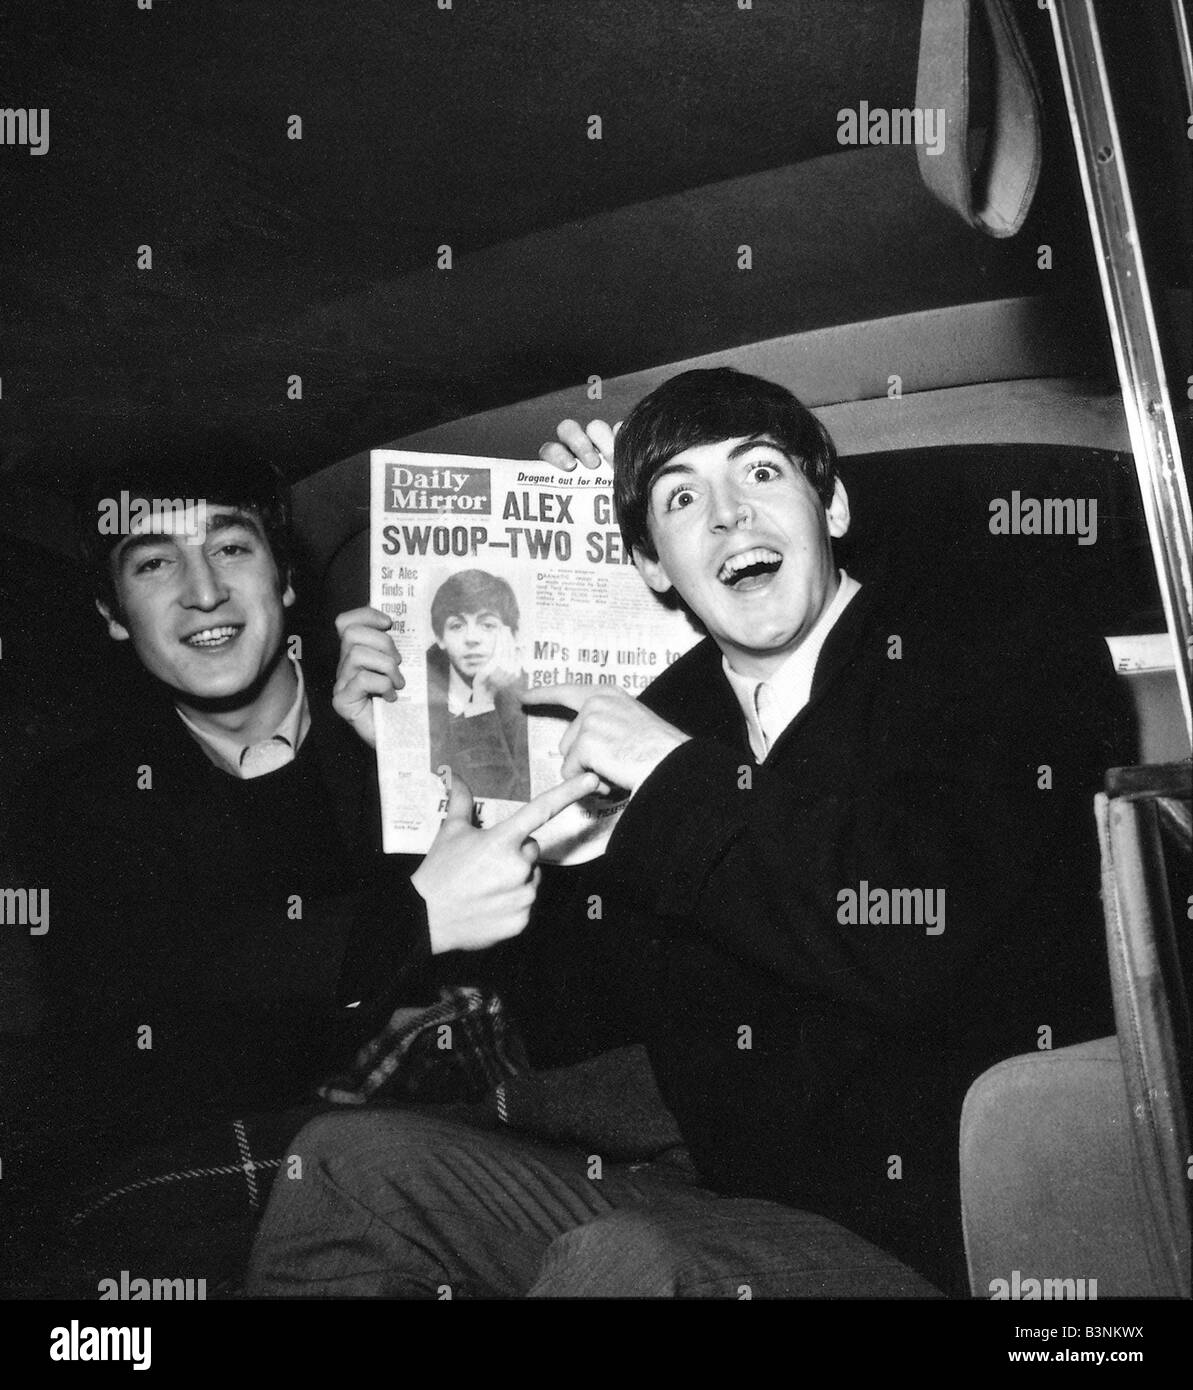 Beatles Files 1963 Paul McCartney John Lennon With A Copy Of The Daily Mirror Newspaper In Back Car